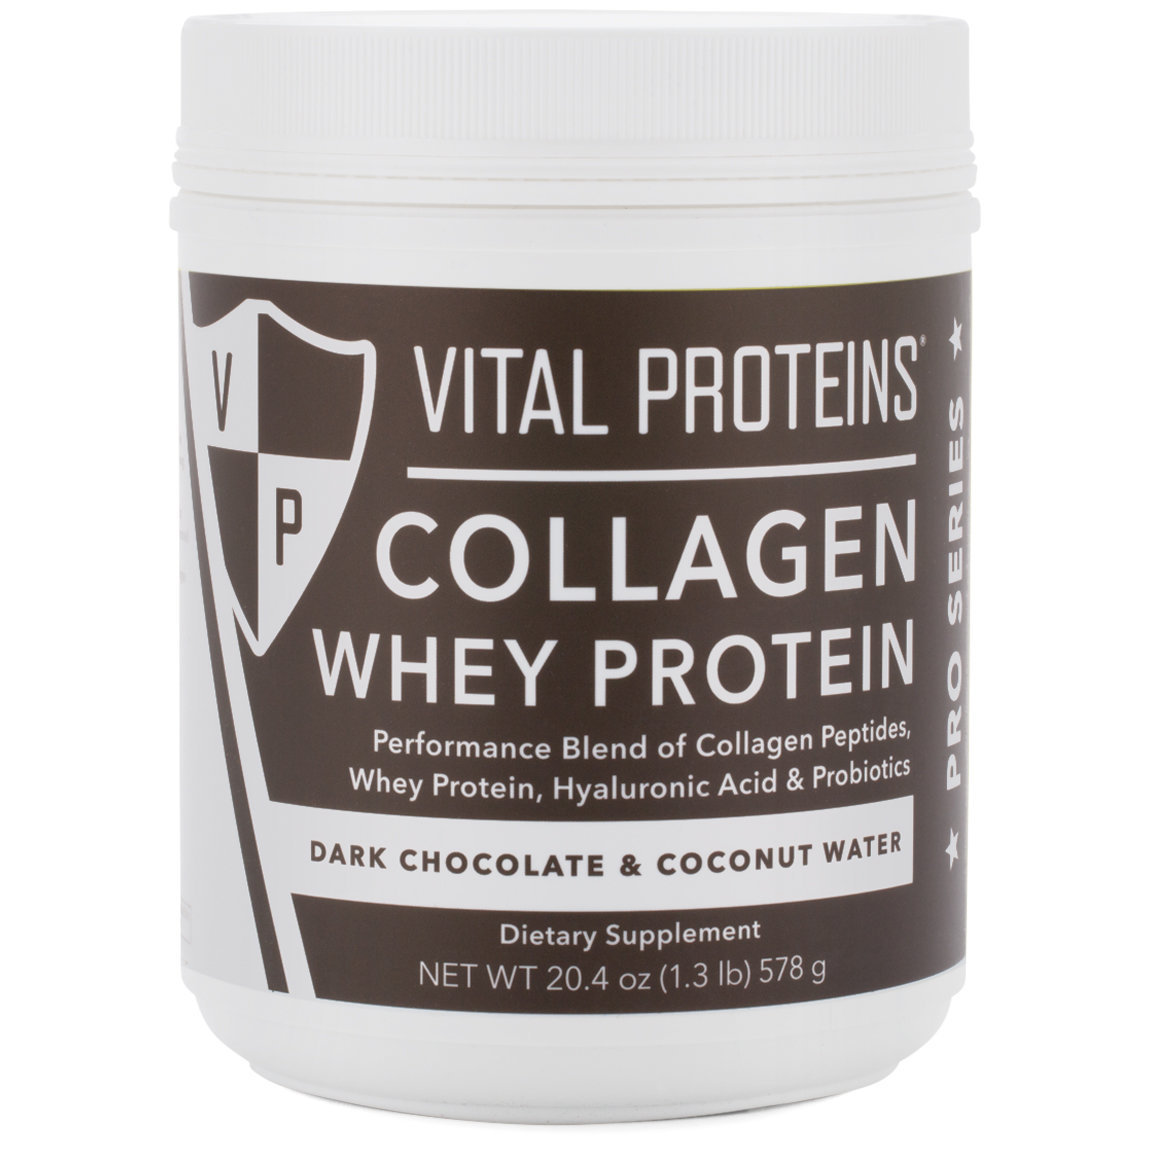 Vital Proteins Collagen Whey Protein - Dark Chocolate & Coconut product swatch.